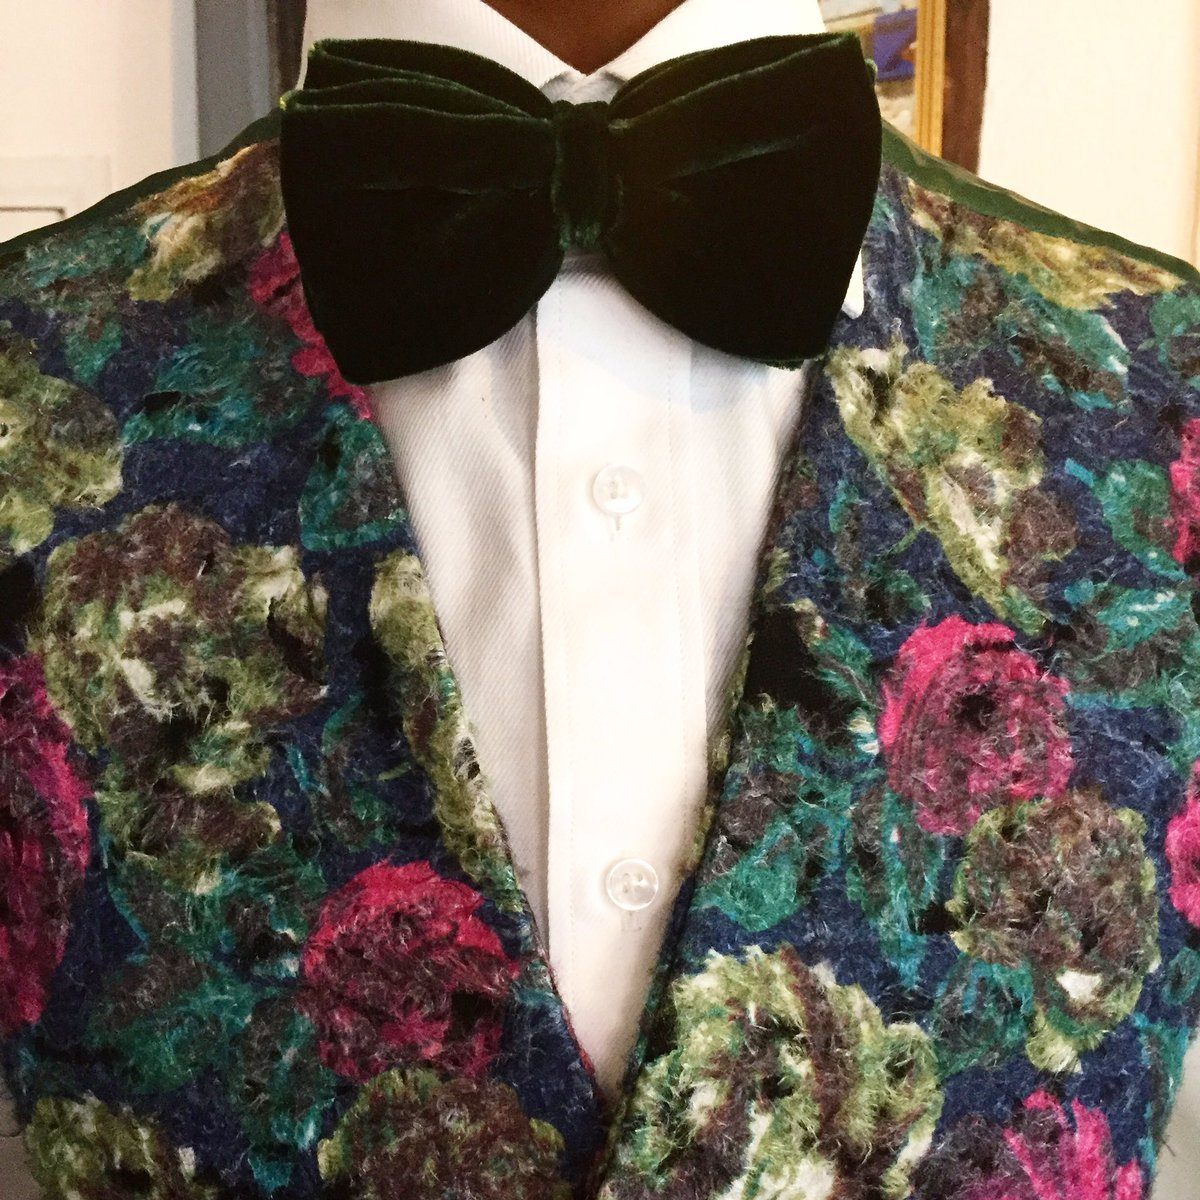 Everything is in the details.#dapper #dandy #cool #funky #bespokewaistcoat #dandylionstyle #sussextailors #gentsstyle #style #fashionpic.twitter.com/4zWOUhQBSg